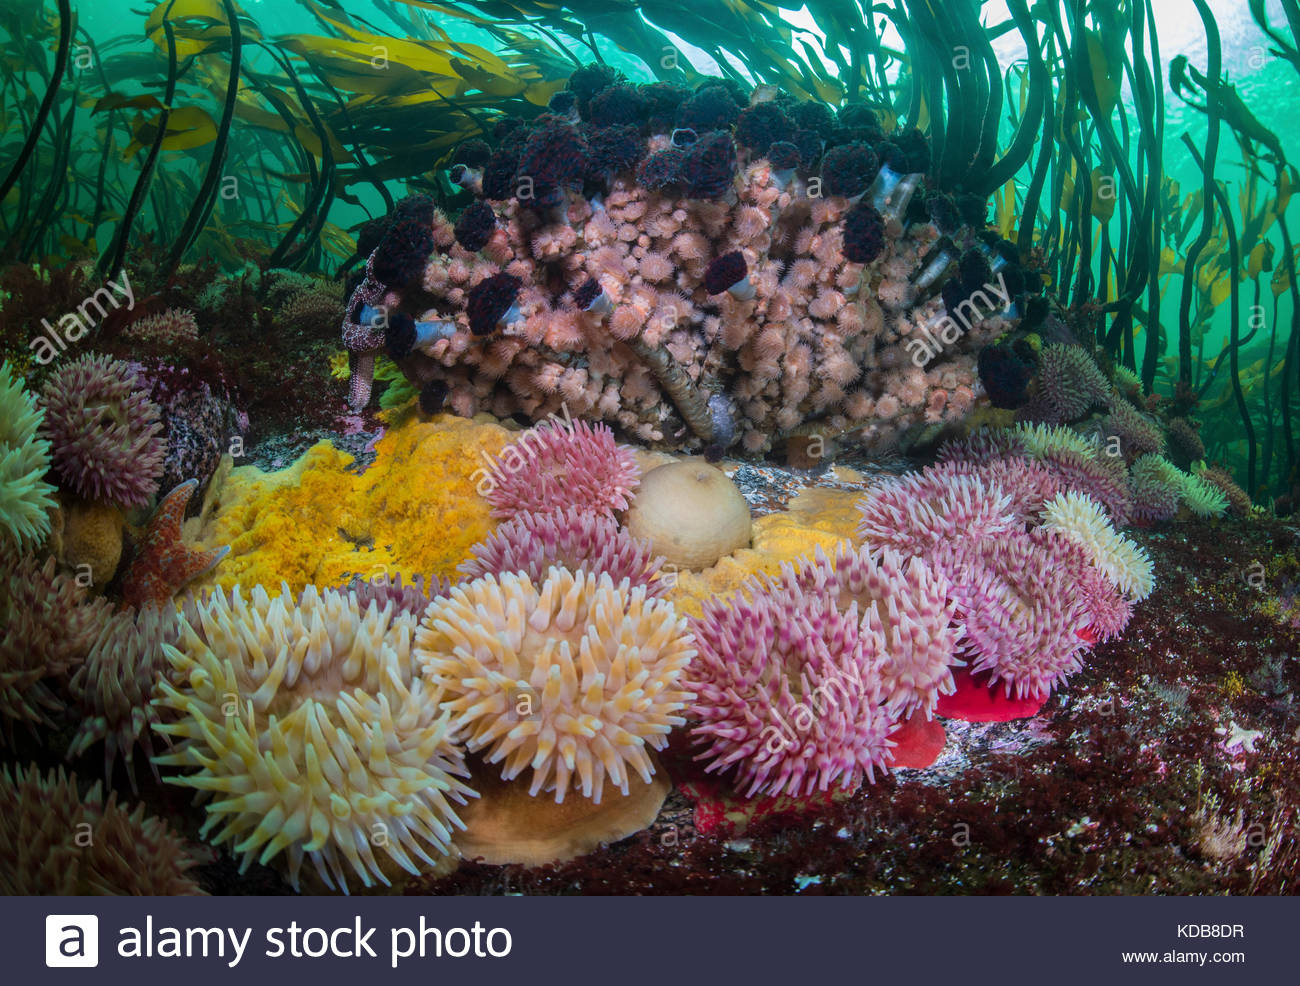 Anemones, sea stars, and Northern featherduster worms, Eudistylia vancouveri, in a kelp forest in the Great Bear - Stock Image